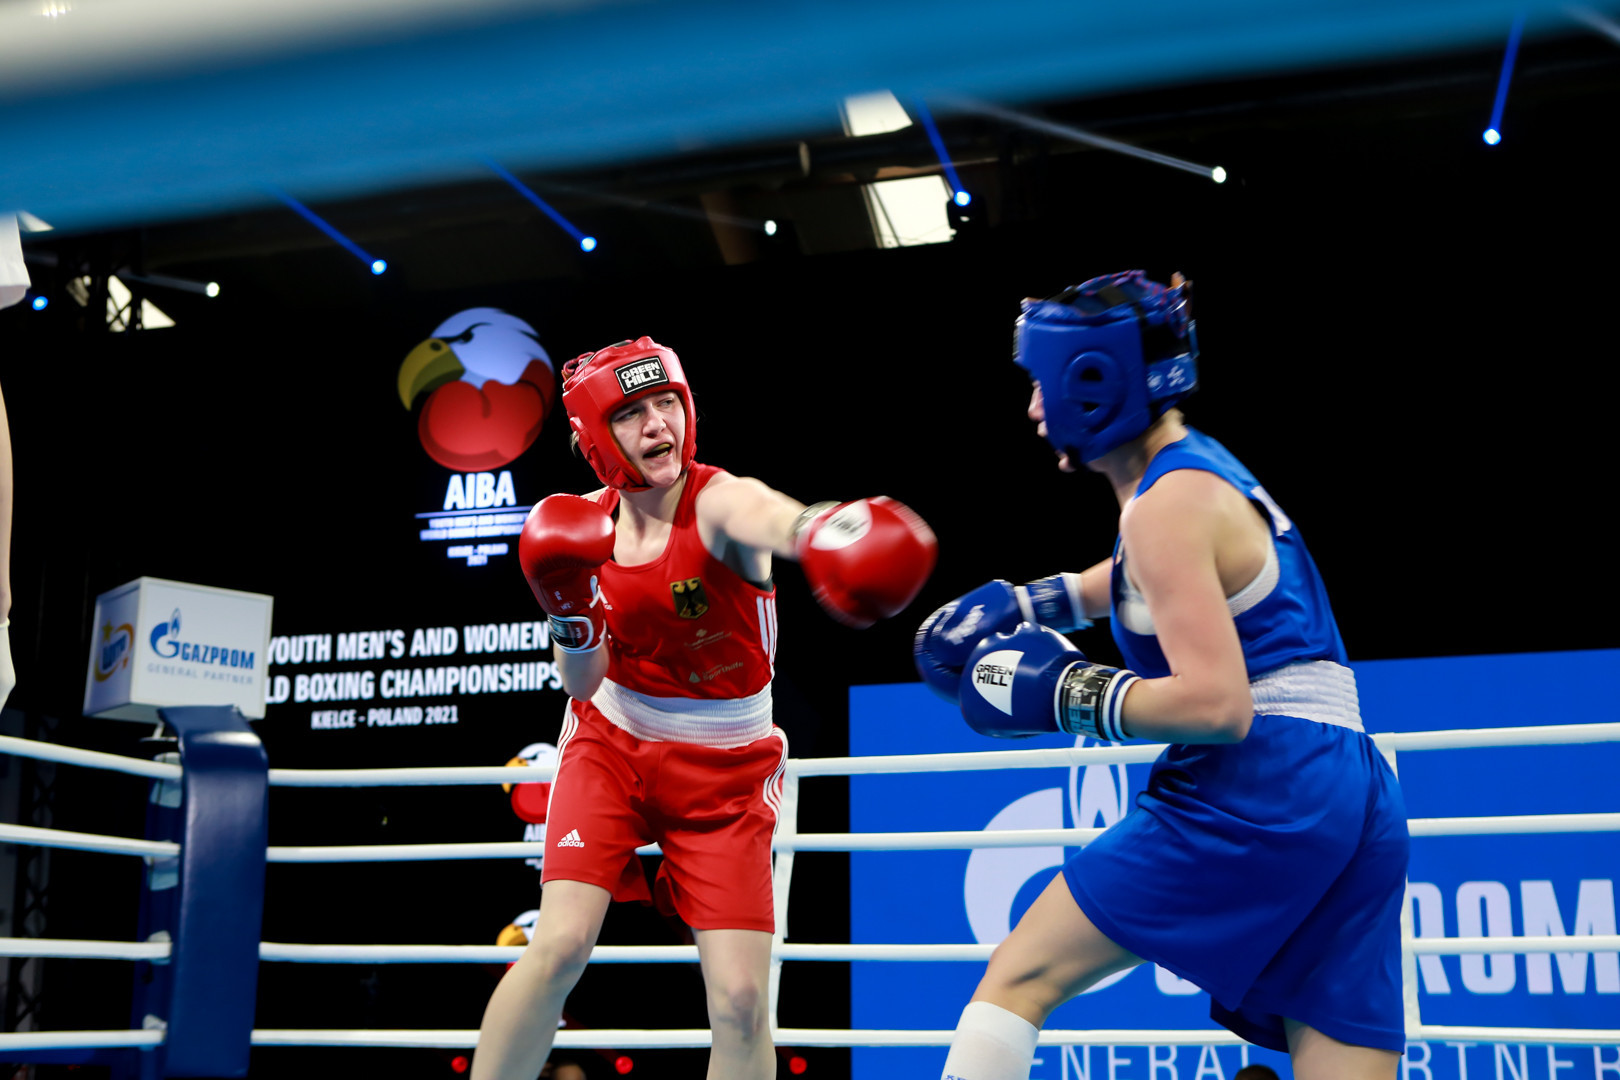 The Championships are taking place behind closed doors because of the coronavirus pandemic ©AIBA